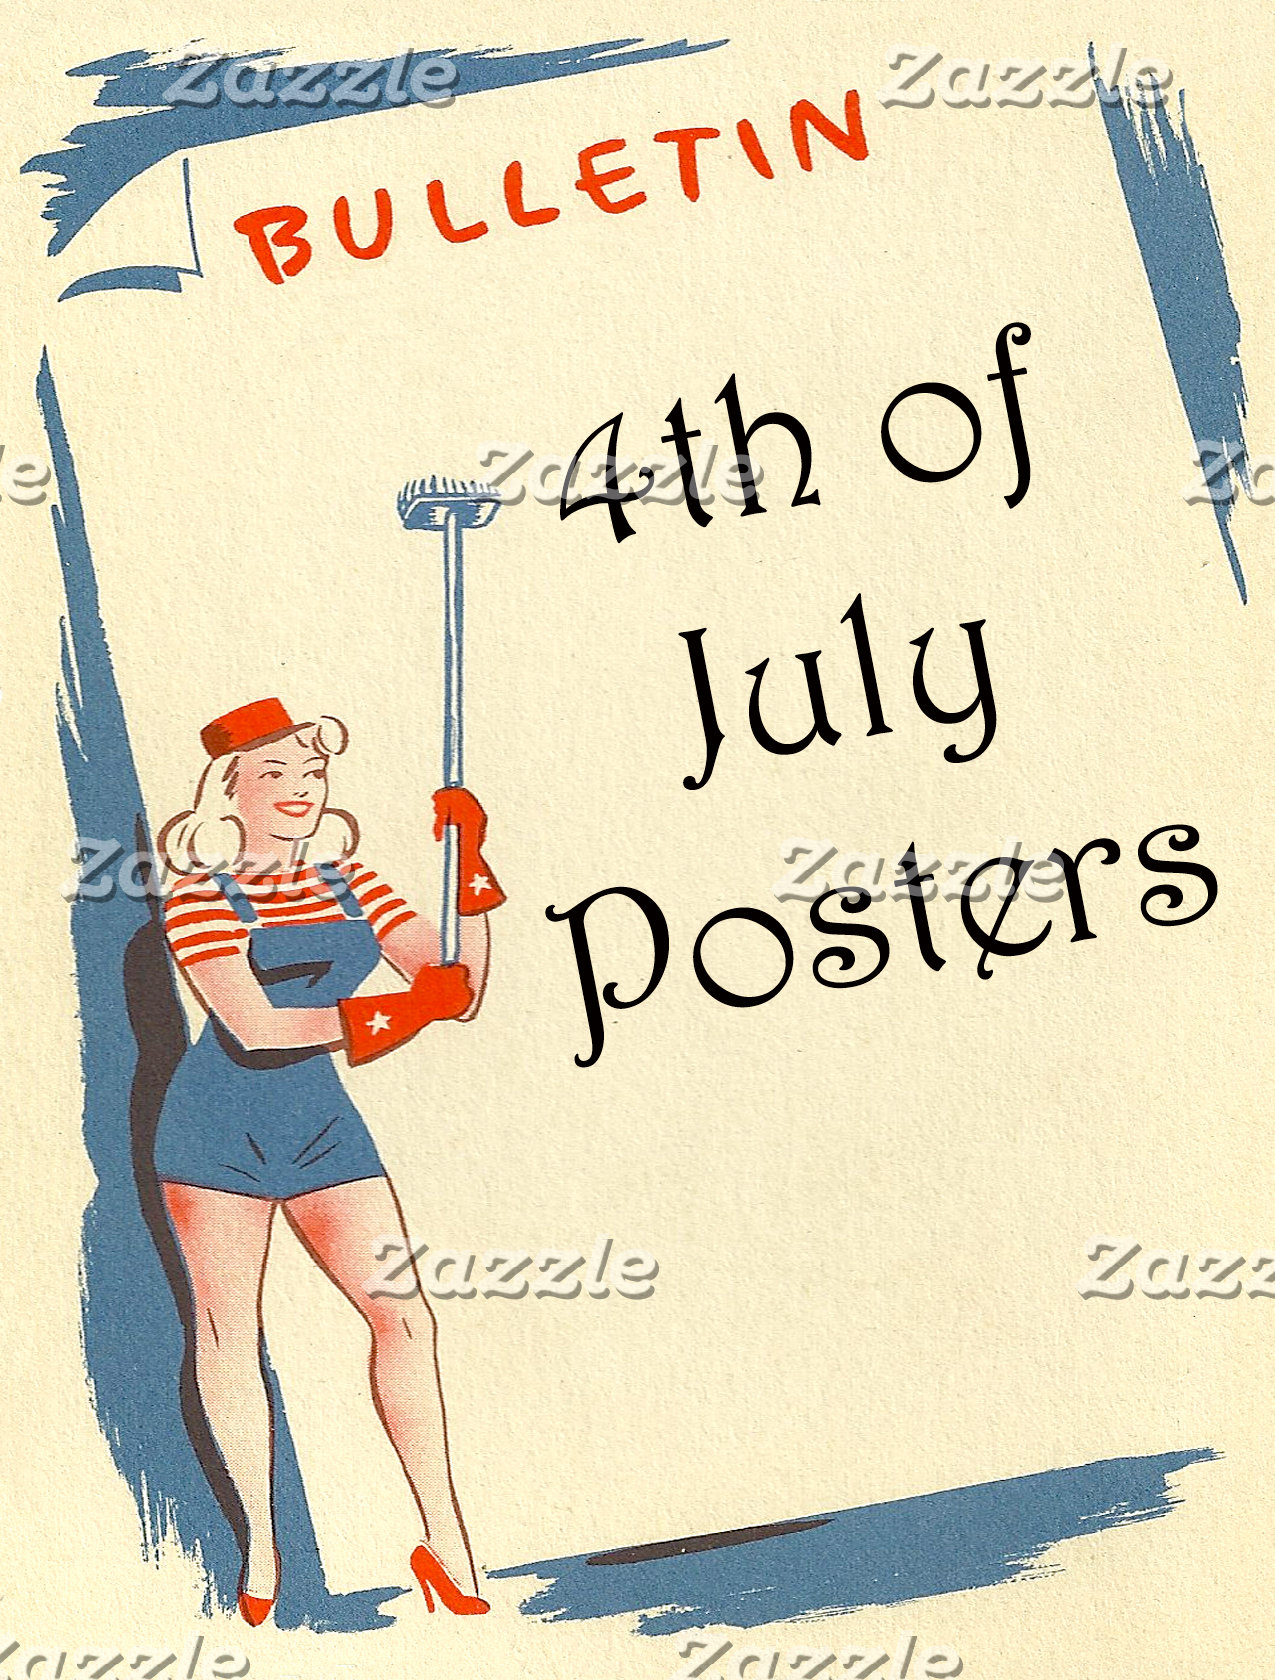 4th of July Posters